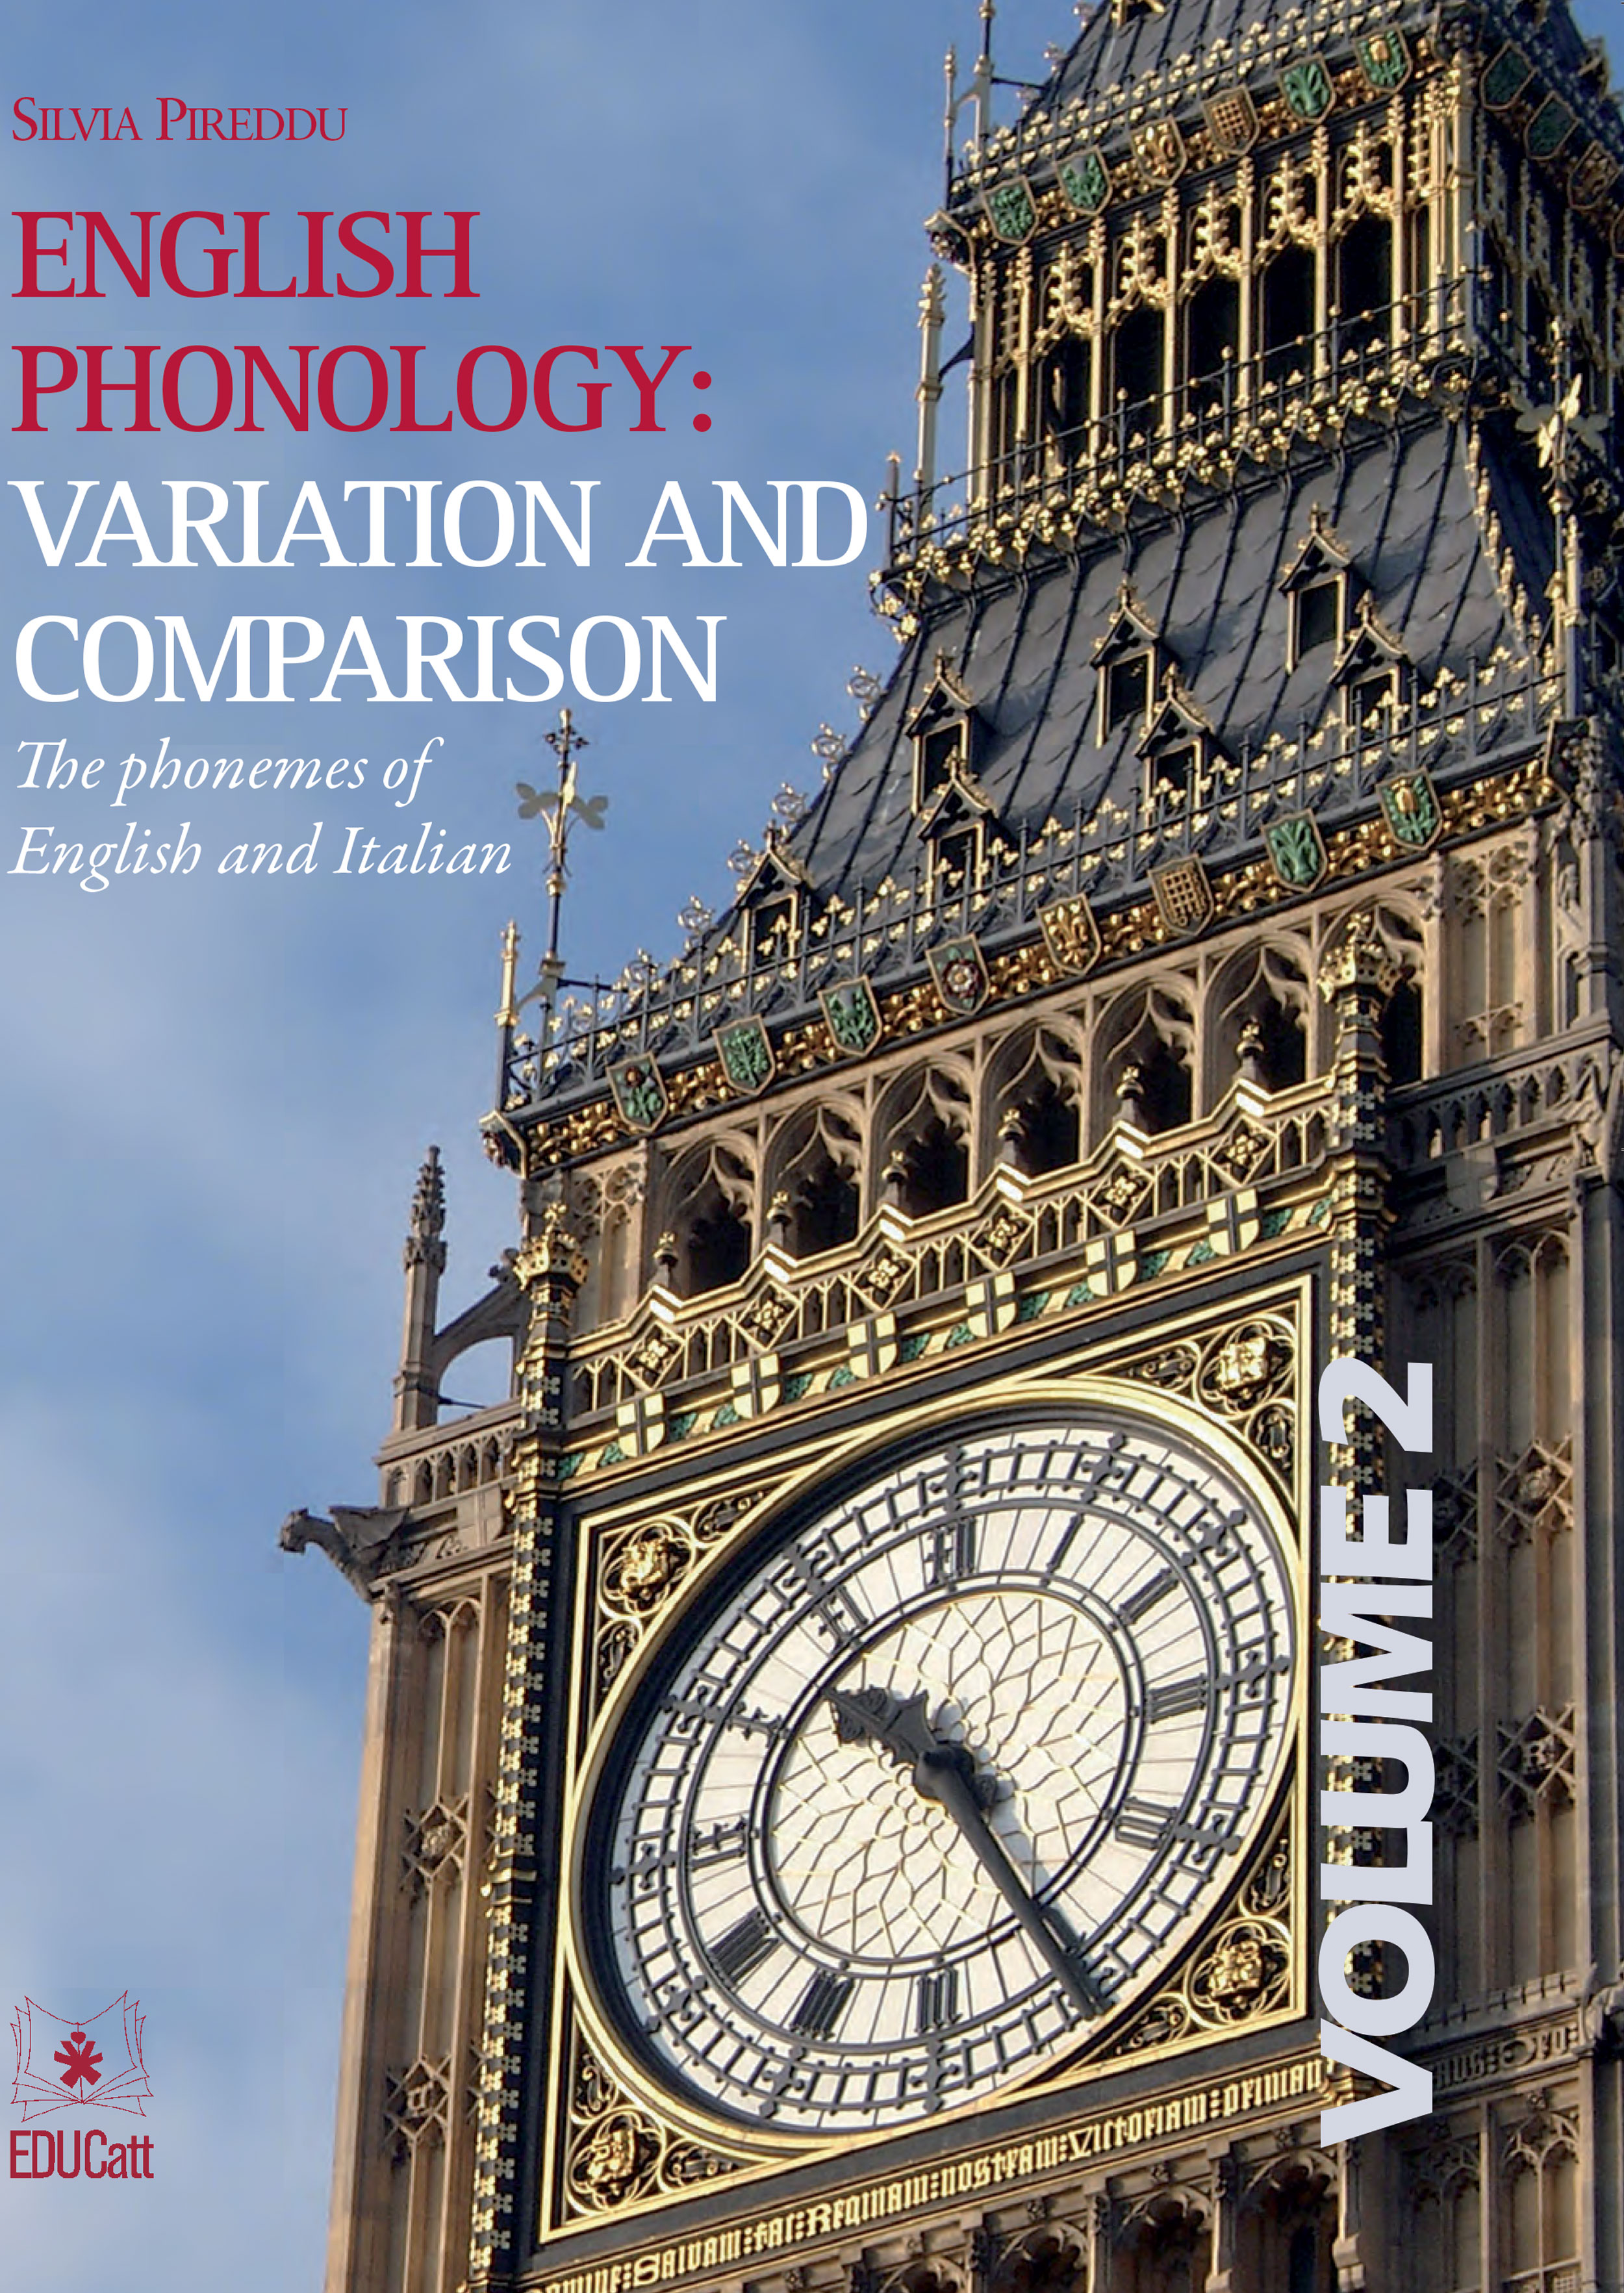 ENGLISH PHONOLOGY: VARIATION AND COMPARISON. THE PHONEMES OF ENGLISH AND ITALIAN